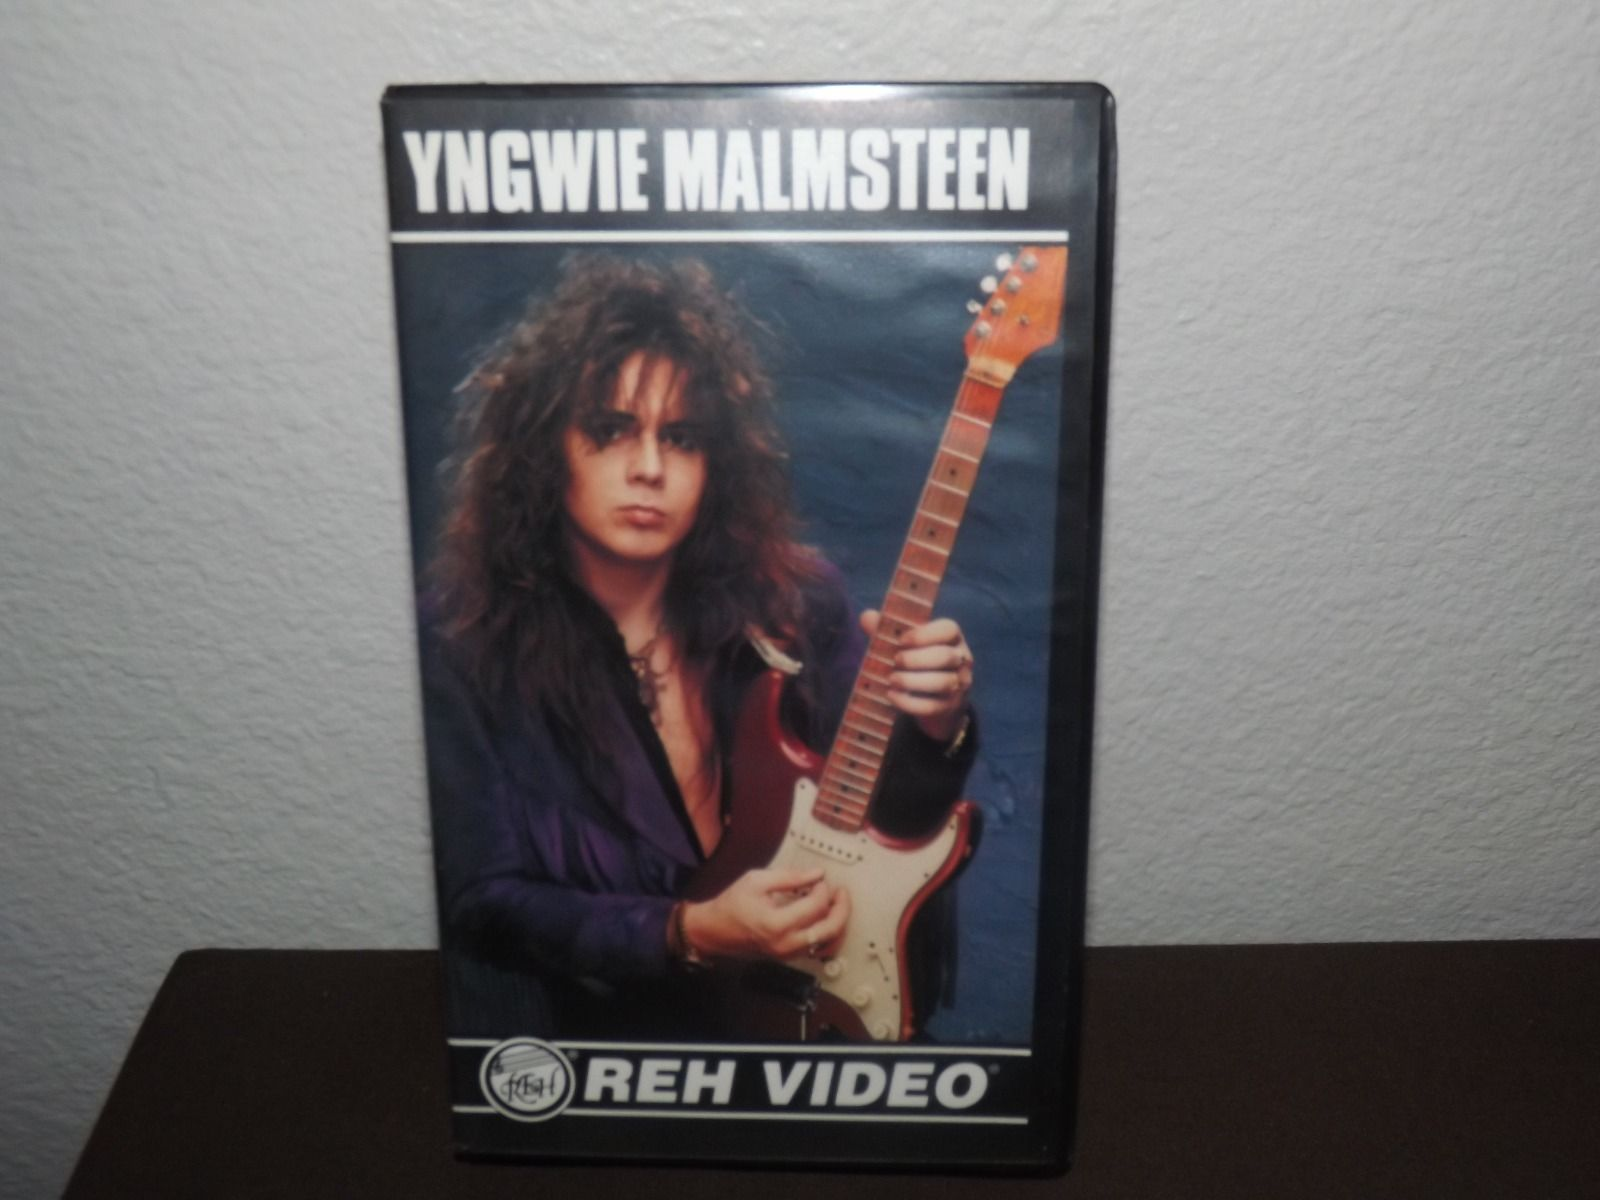 Yngwie Malmsteen REH Guitar Technique Instructional Video VHS 1992 Classic Rare